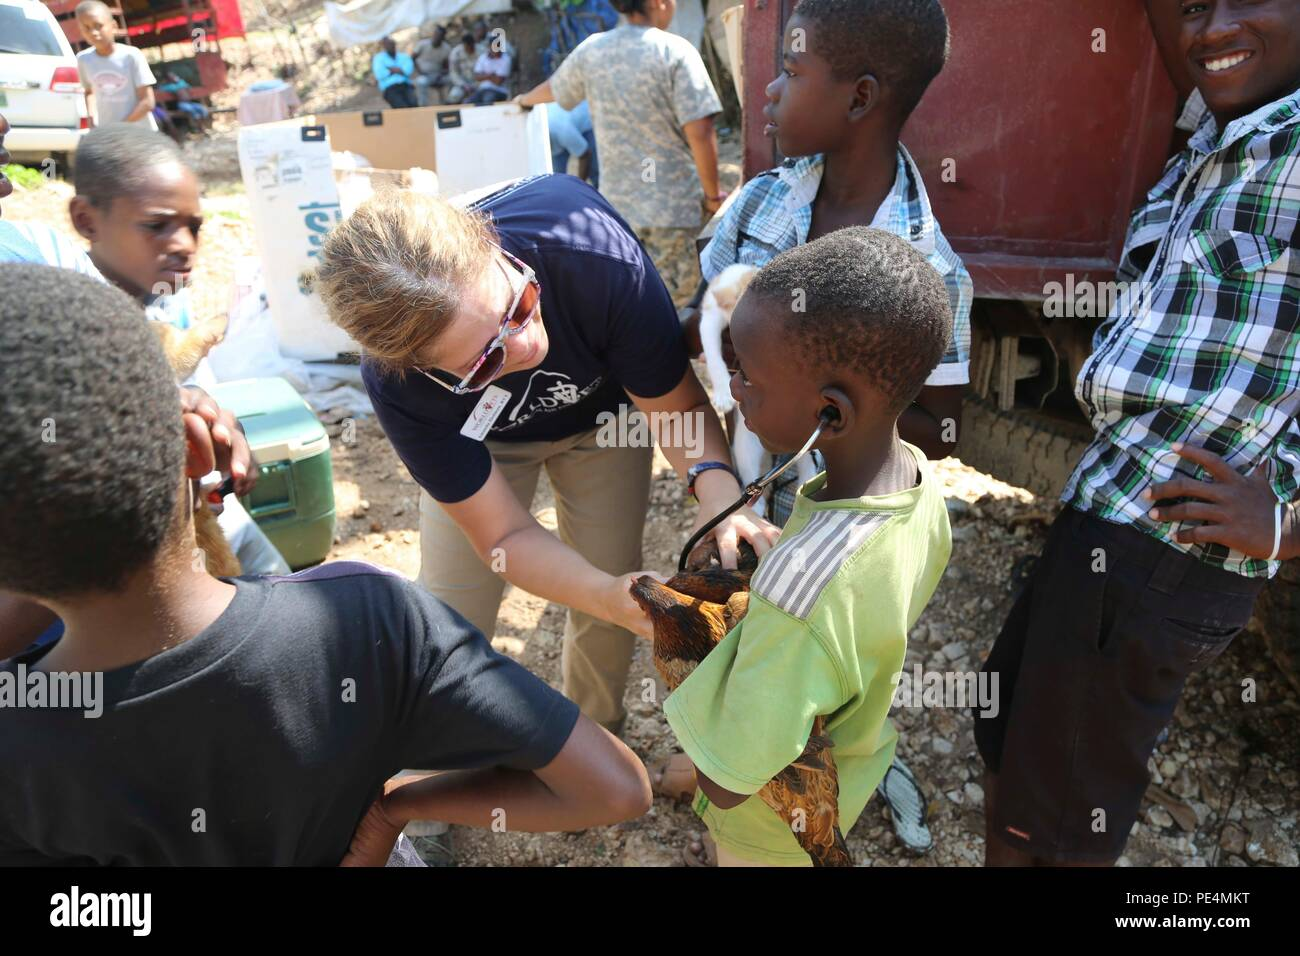 150917-A-BK746-197 PORT AU PRINCE, Haiti (Sept. 17, 2015)  A volunteer with the non-governmental organization (NGO) World Vets shows a child how a stethoscope works during a veterinary civil affairs program in support of Continuing Promise 2015 (CP-15). World Vets volunteers are working alongside other NGOs and military members during CP-15. Continuing Promise is a U.S. Southern Command-sponsored and U.S. Naval Forces Southern Command/U.S. 4th Fleet-conducted deployment to conduct civil-military operations including humanitarian-civil assistance, subject matter expert exchanges, medical, denta - Stock Image